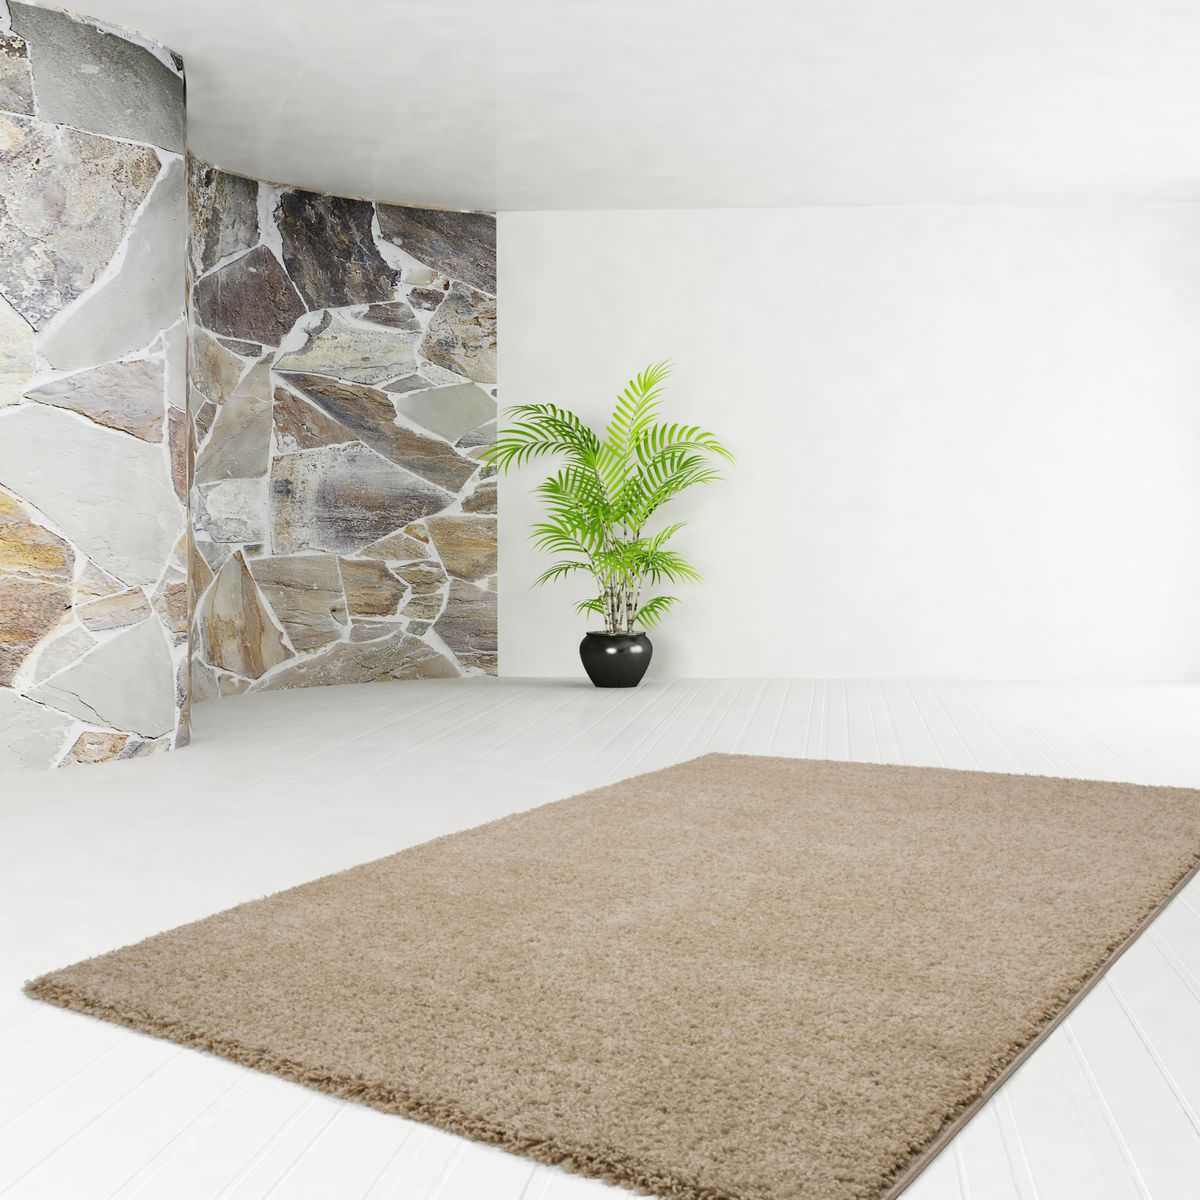 Exterieur Kayoom Tapis Comfy 100 Beige Kayoom à 52 90 Chez Recollection